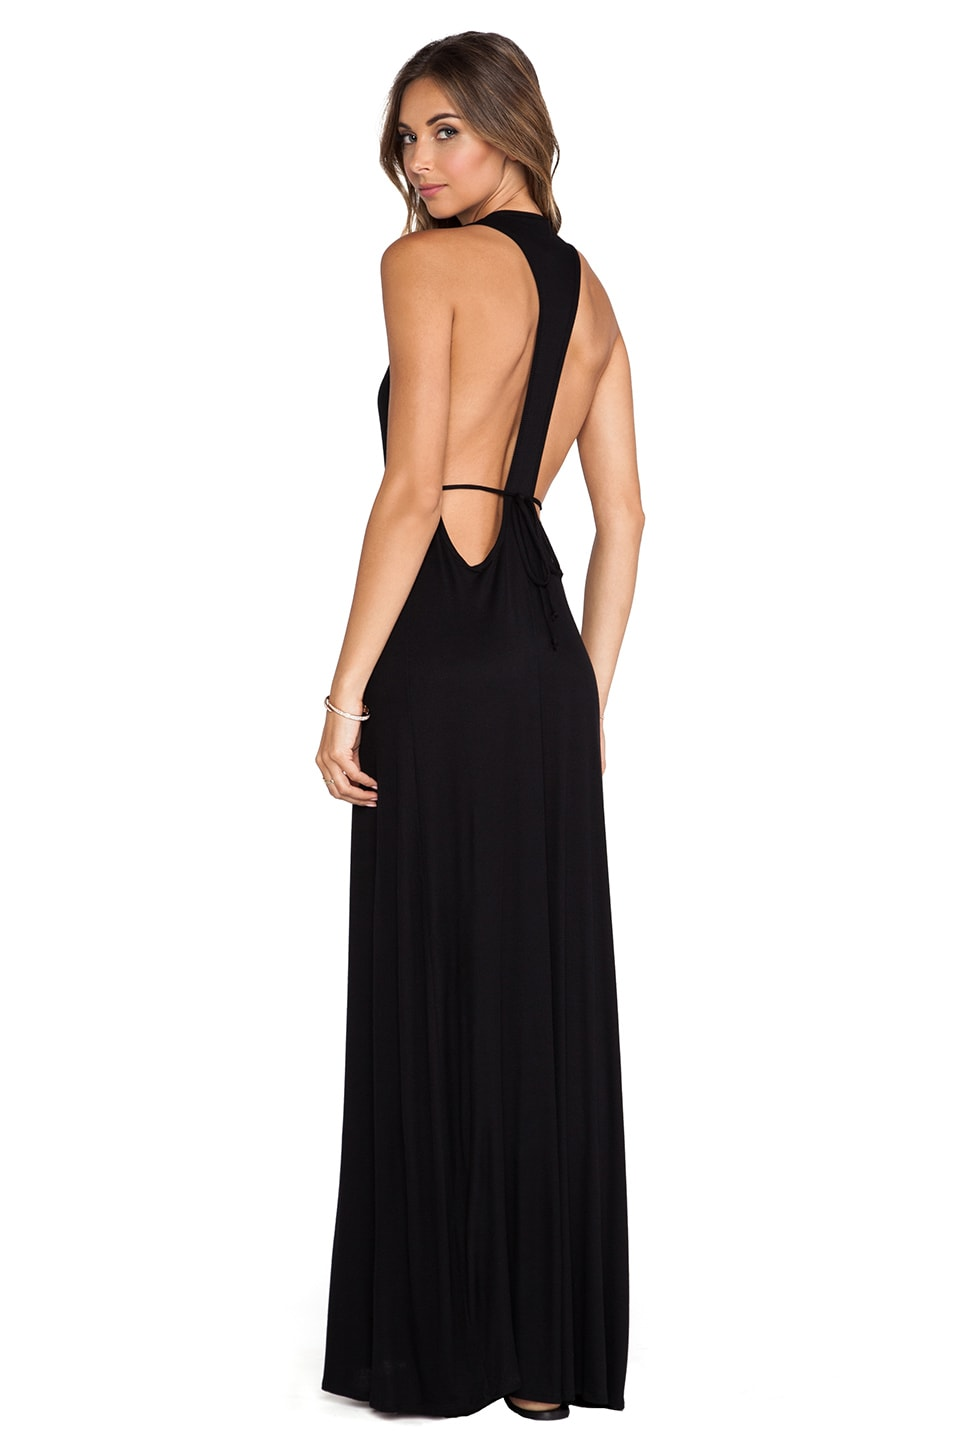 Rachel Pally X REVOLVE Rib Iona Maxi Dress in Black